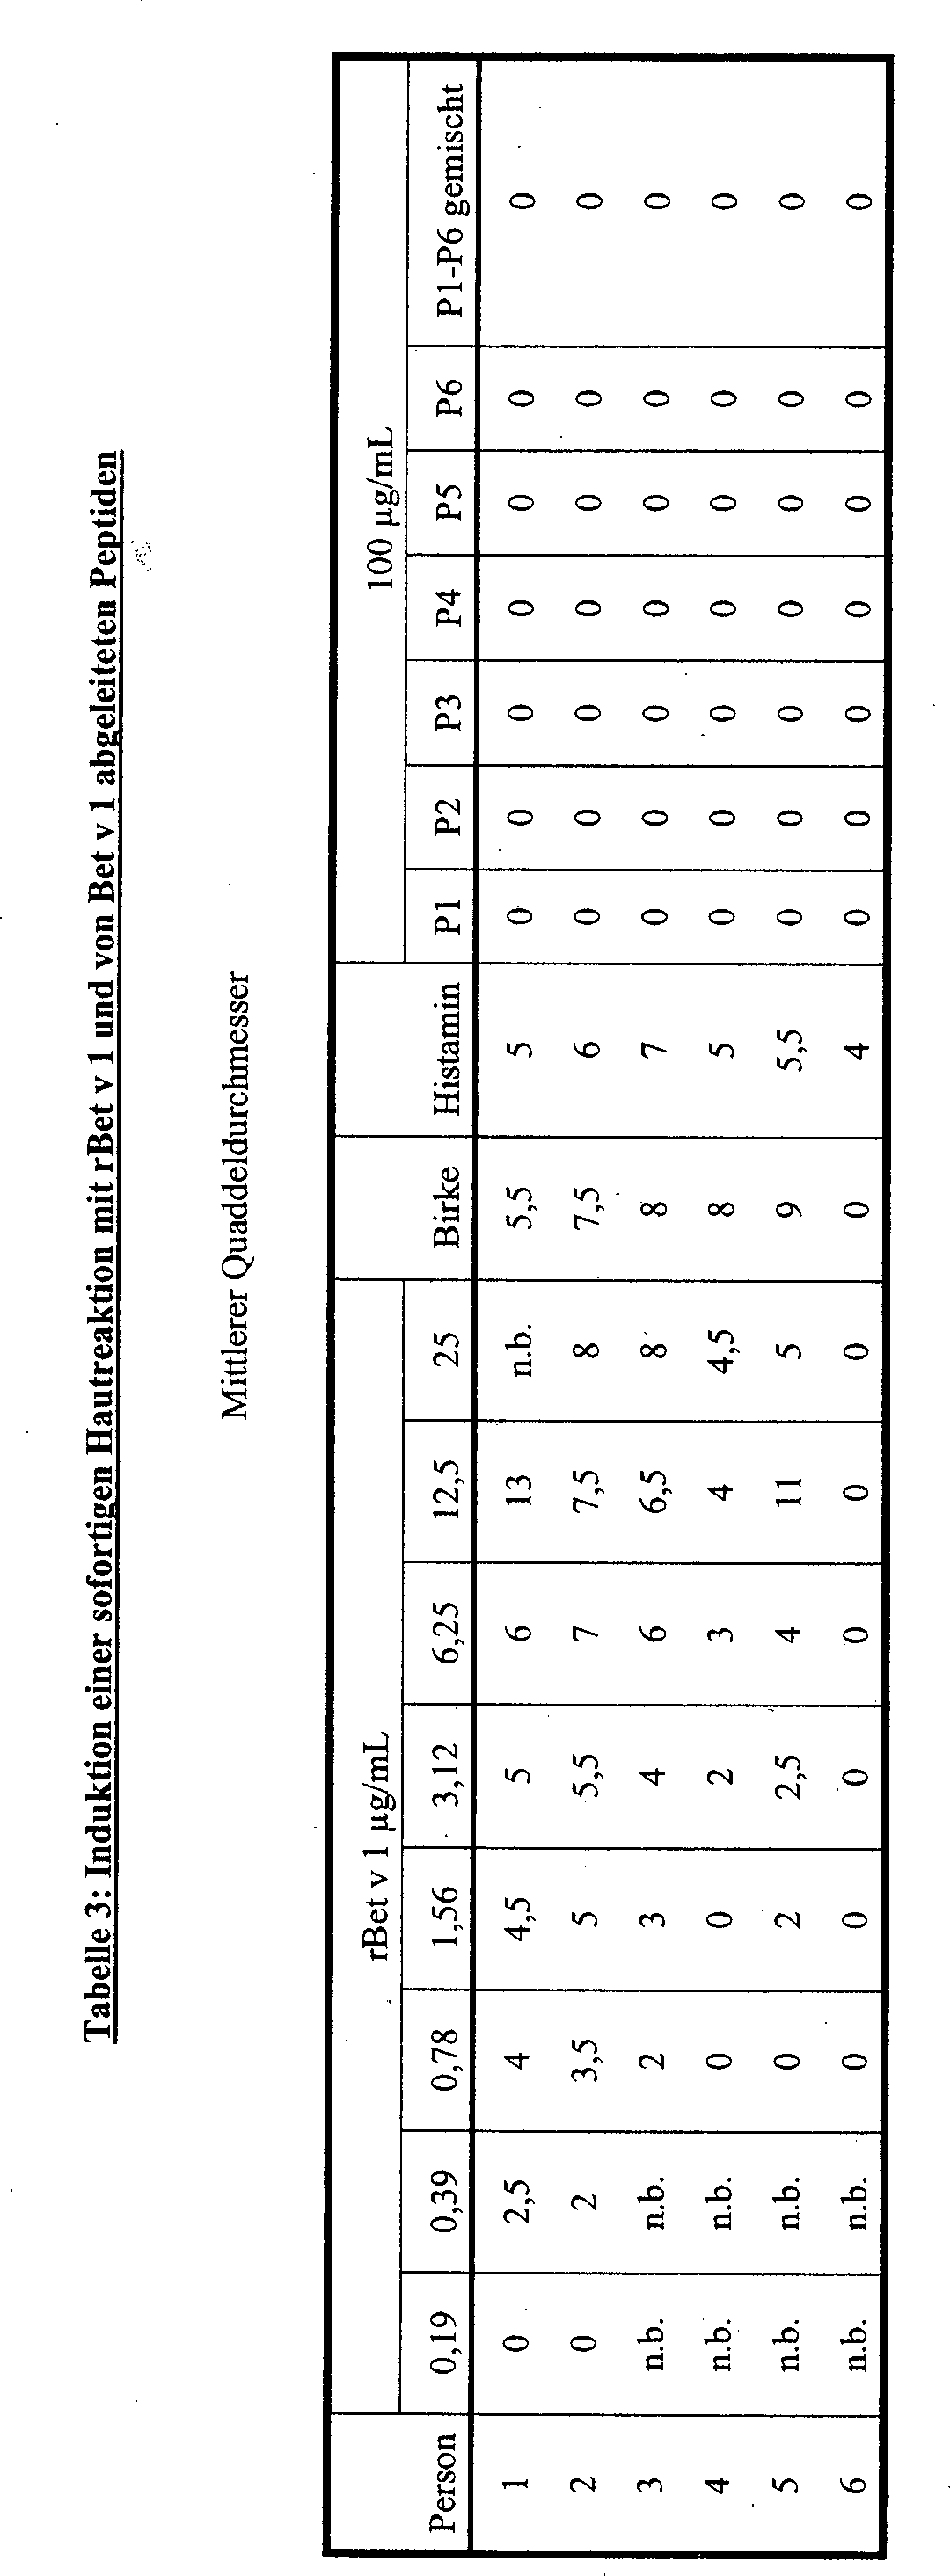 DE60033414T3 - Allergy vaccines and their preparation - Google Patents